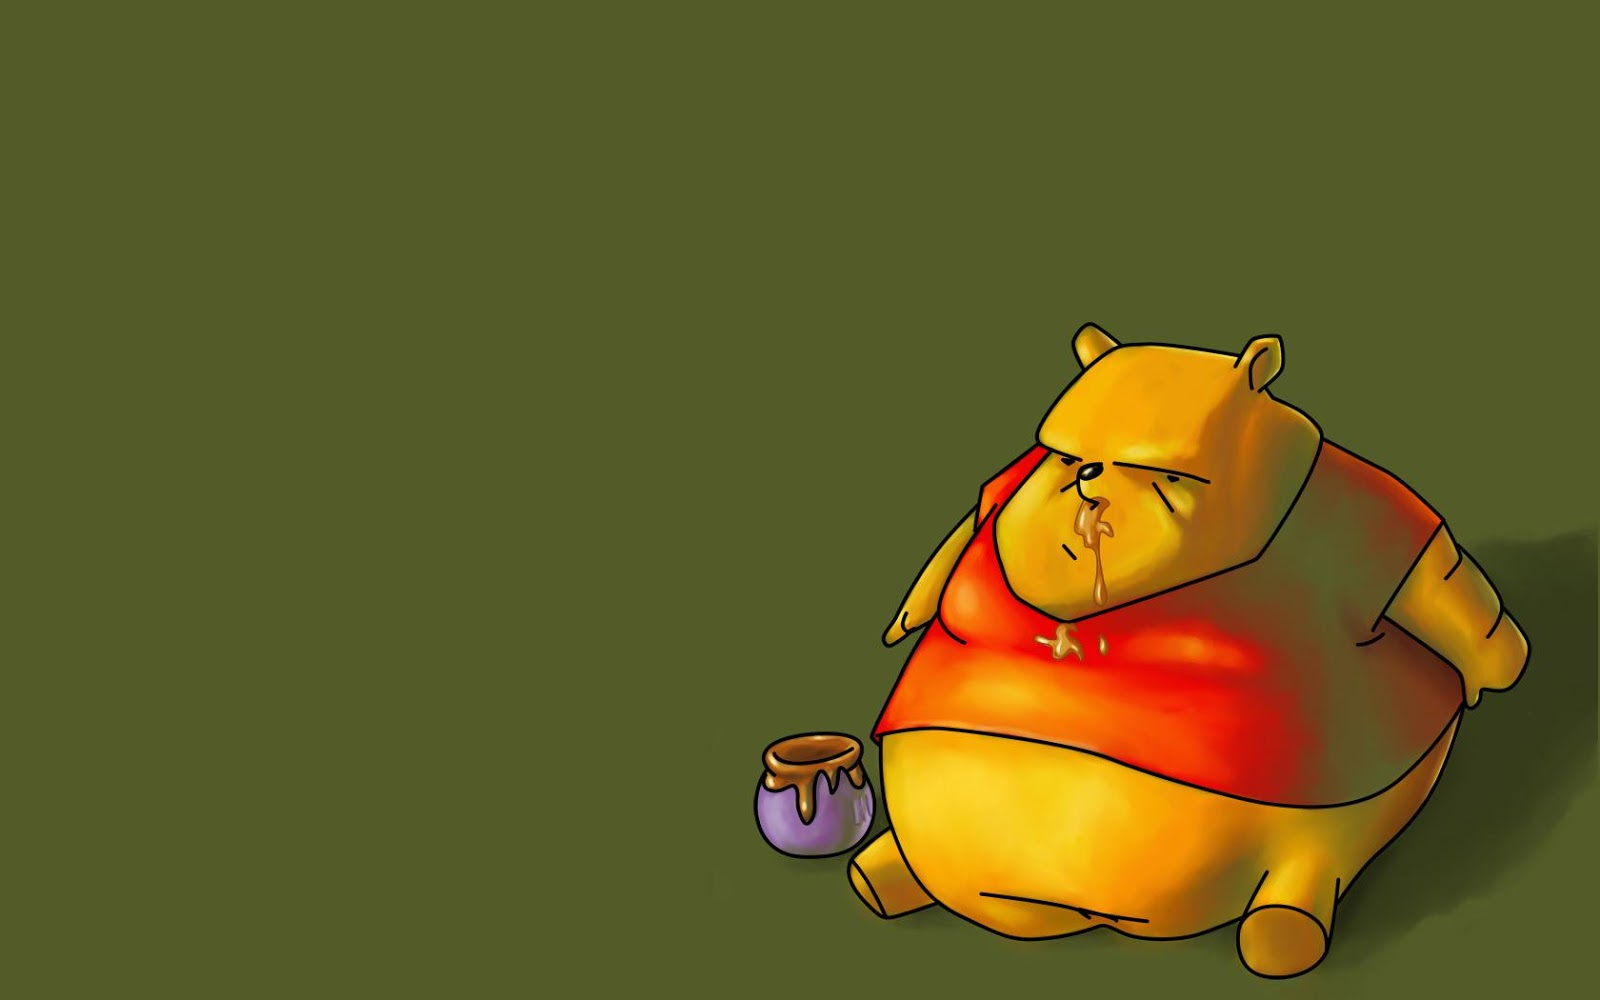 Pooh Wallpaper Iphone Wallpapero